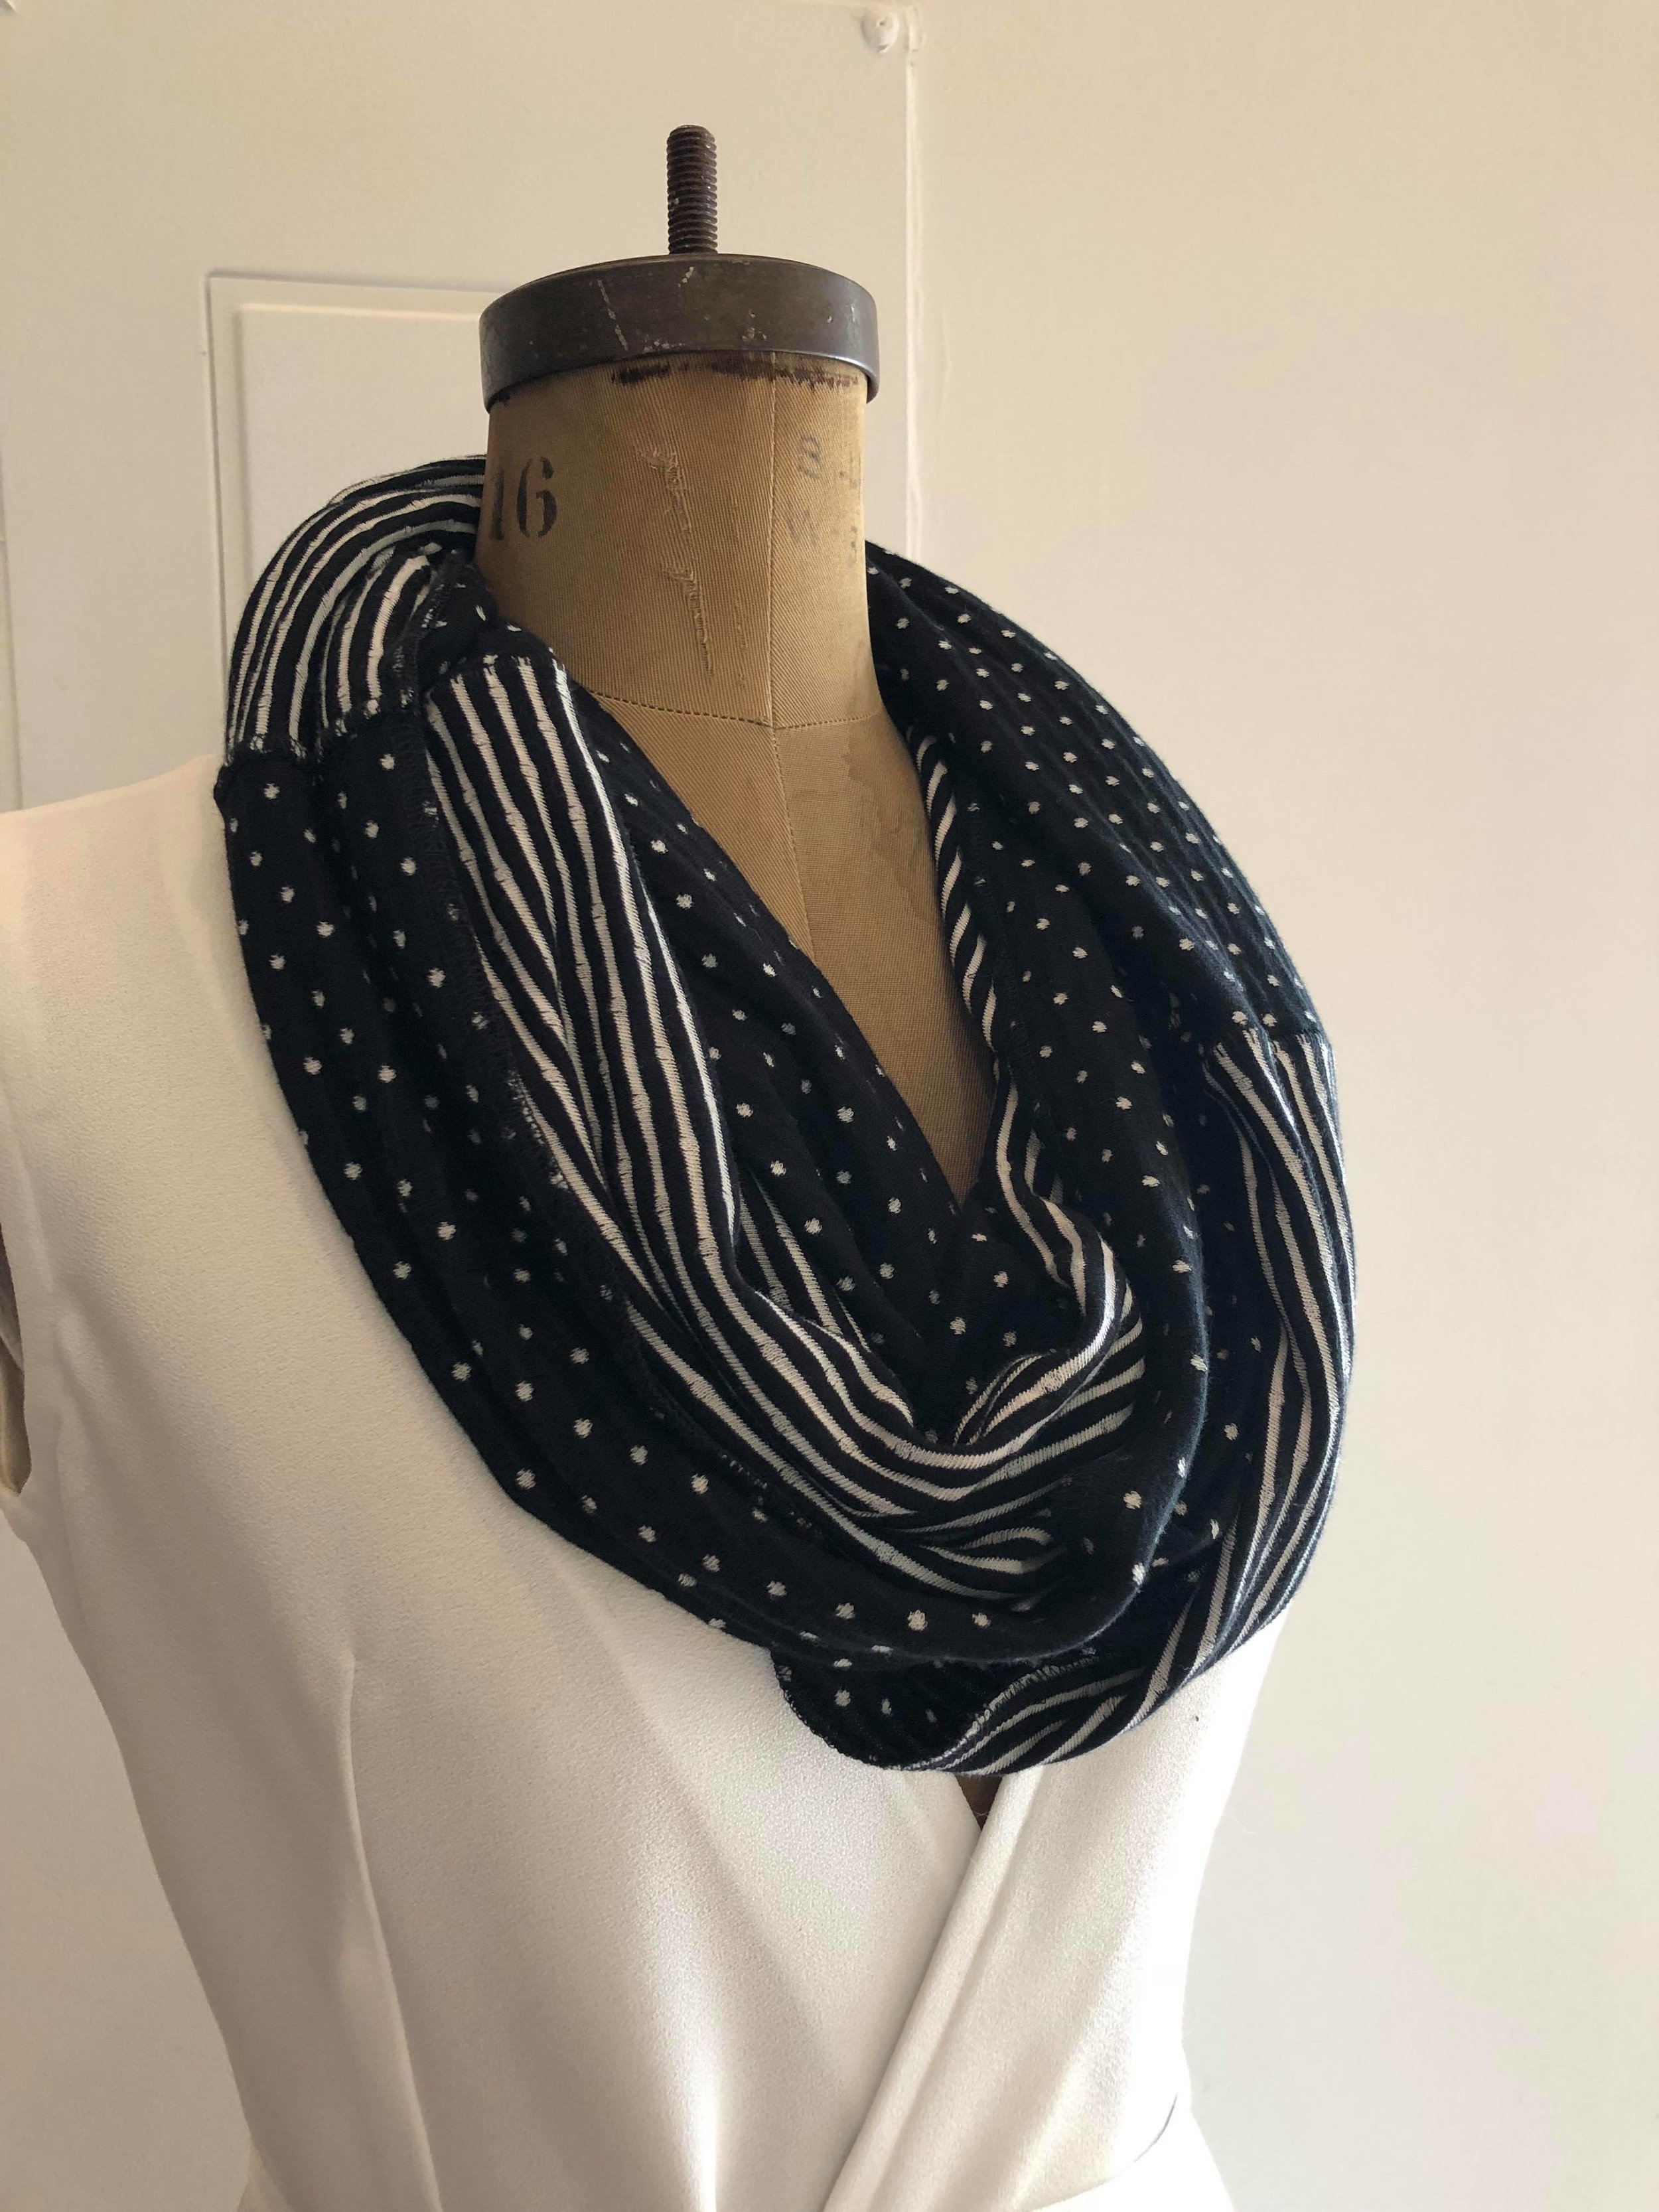 Black and White Scarf.jpg